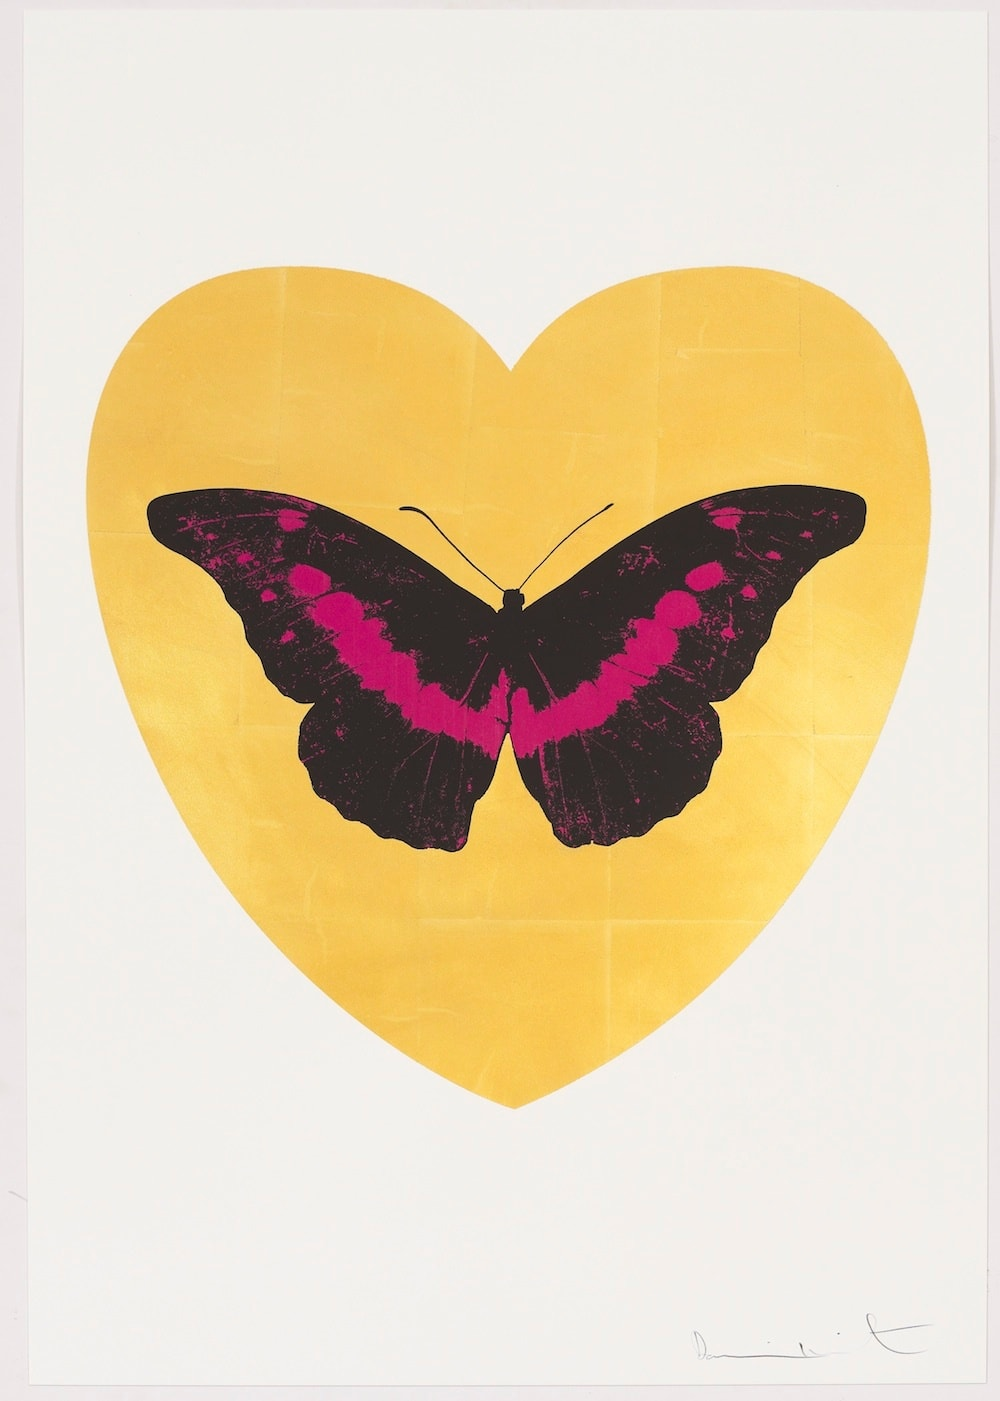 Damien Hirst I Love You - gold leaf, black, fuchsia, 2015 Gold leaf and 2 colour foil block on Somerset Satin 410gsm. OC10331 100 x 70 cm Edition of 14 Signed and numbered